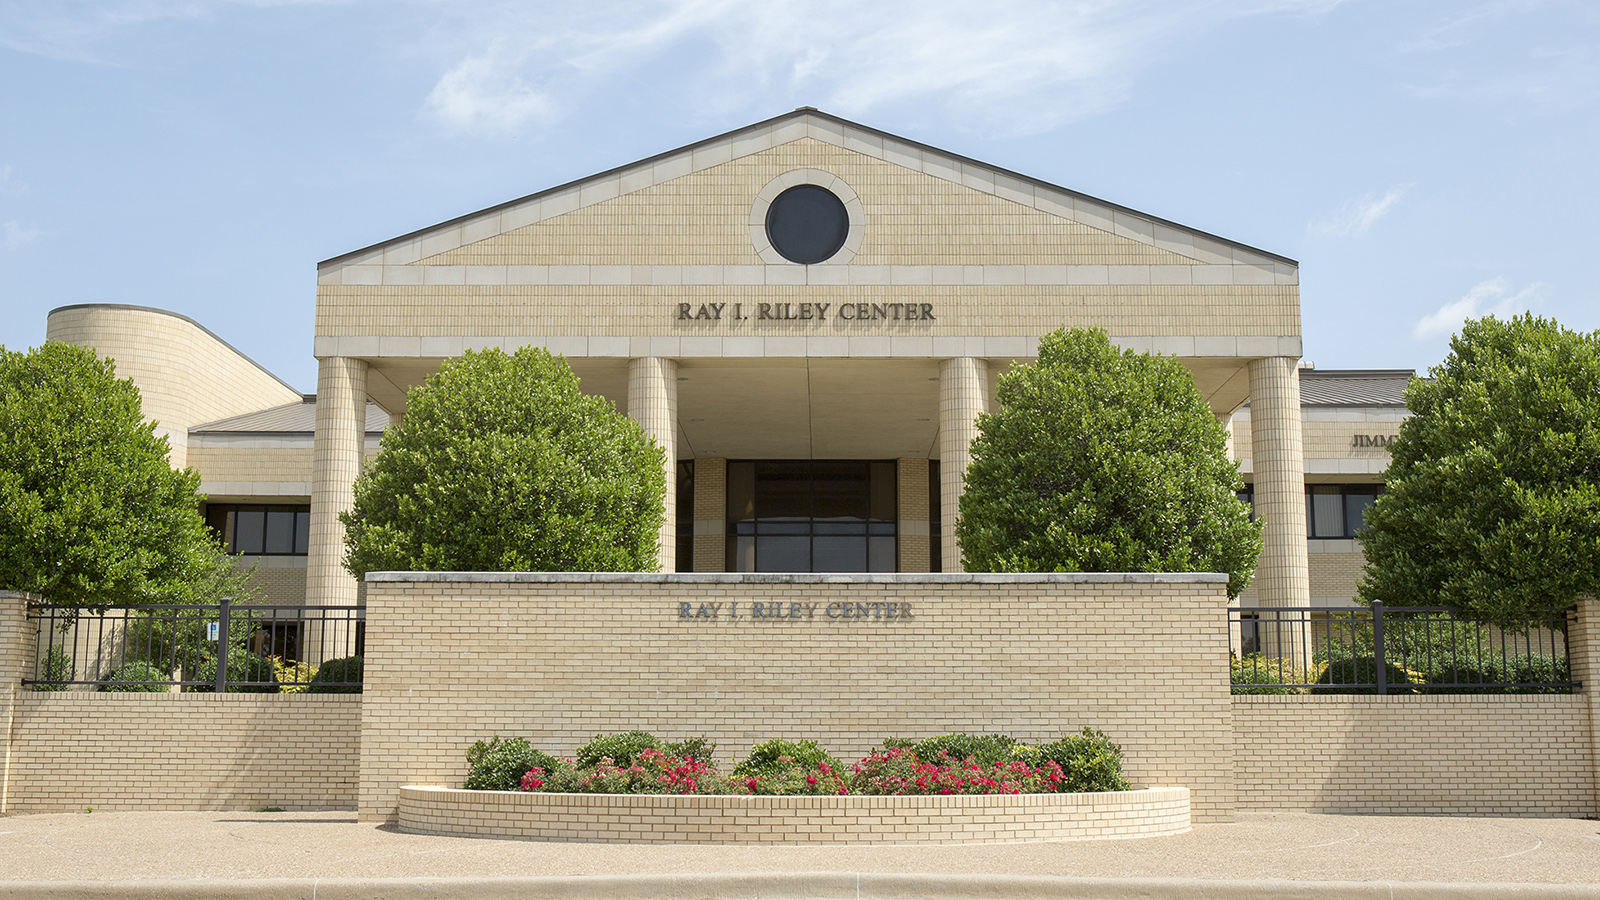 The Riley Center on the Southwestern Baptist Theological Seminary campus in Fort Worth, Texas. Photo courtesy of SWBTS